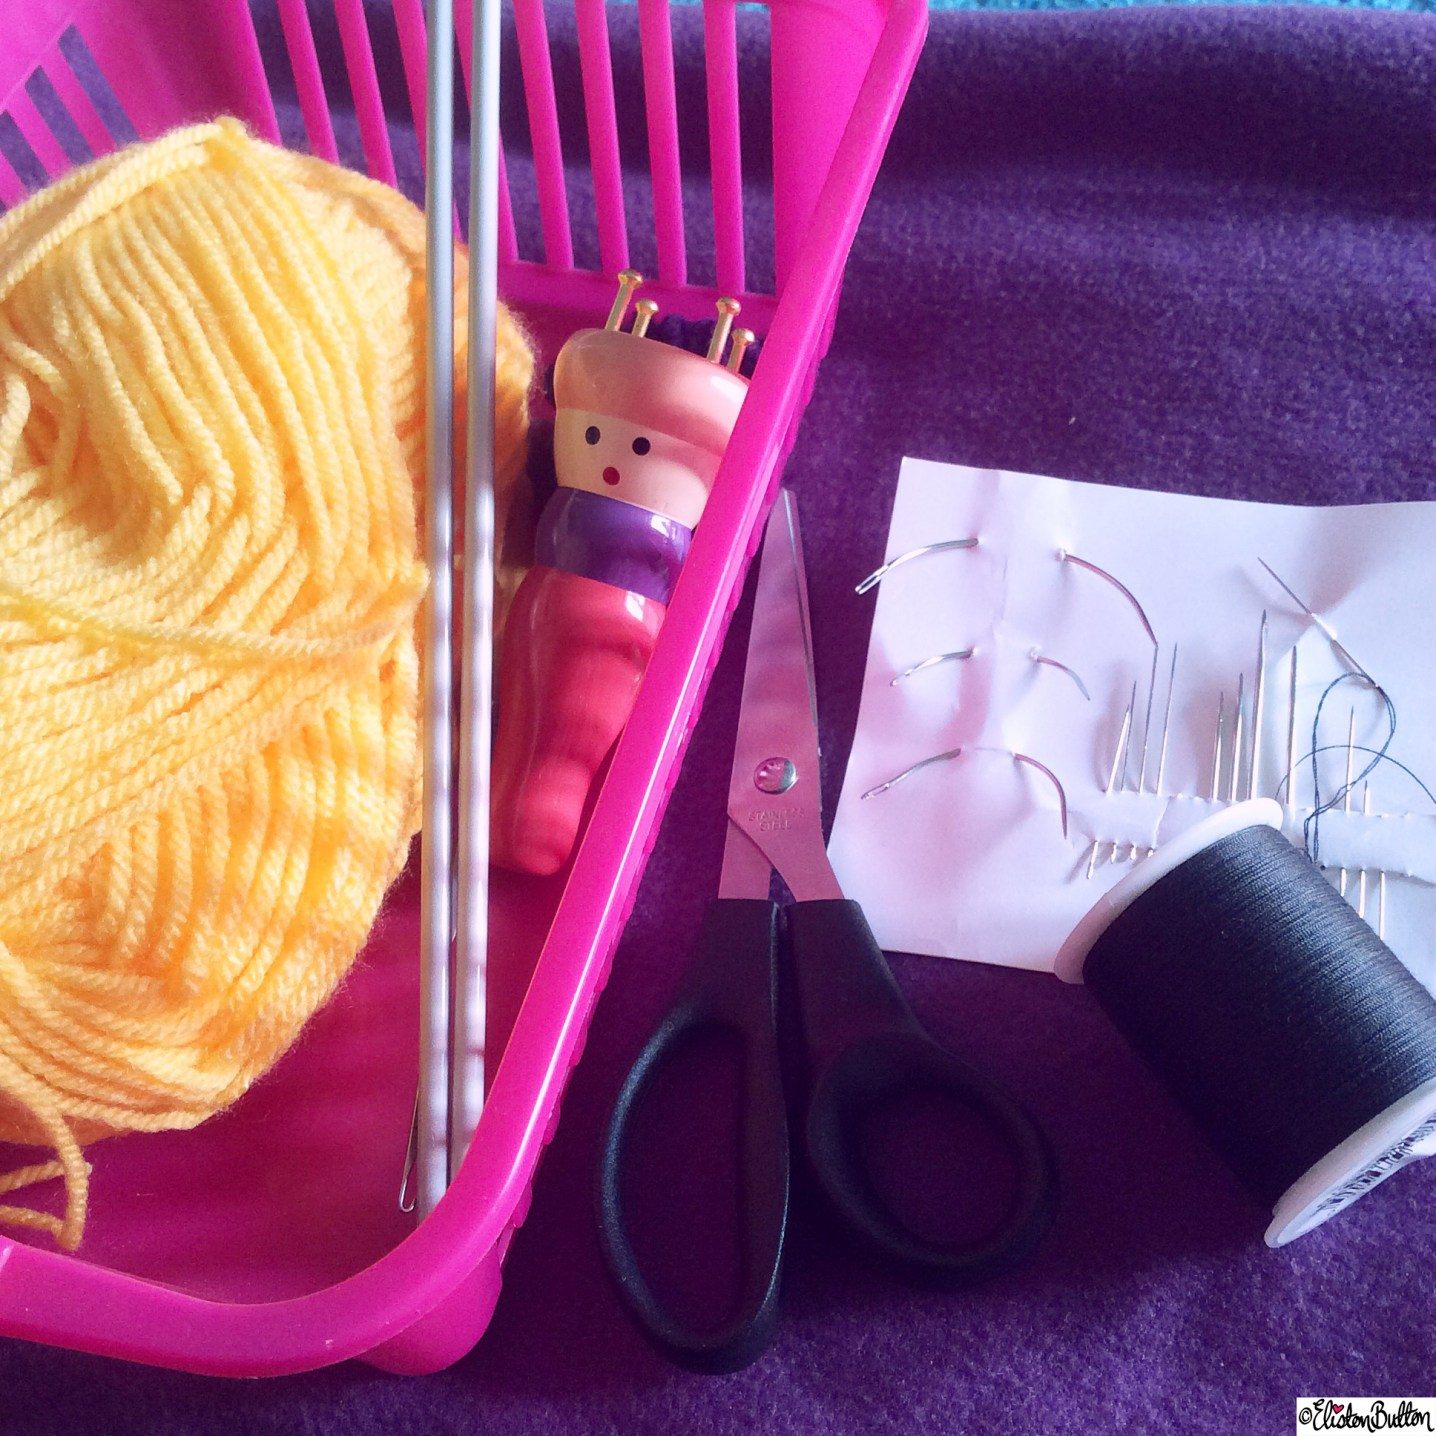 French Knitting and Sewing - Around Here...May 2015 at www.elistonbutton.com - Eliston Button - That Crafty Kid – Art, Design, Craft & Adventure.